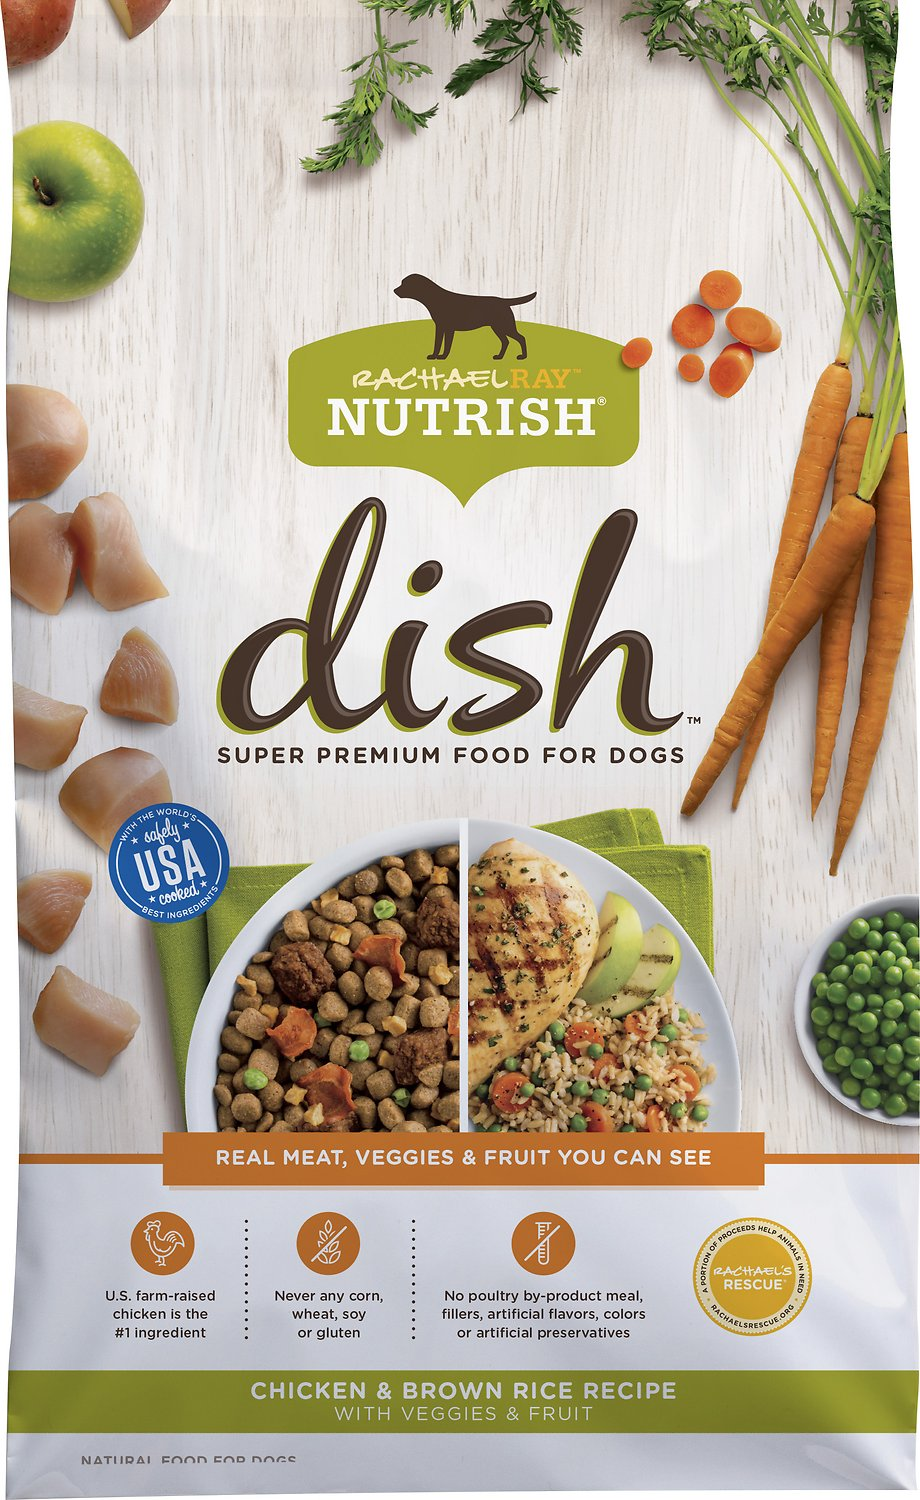 Rachael Ray Nutrish Dish Natural Chicken & Brown Rice Recipe Dry Dog Food Image